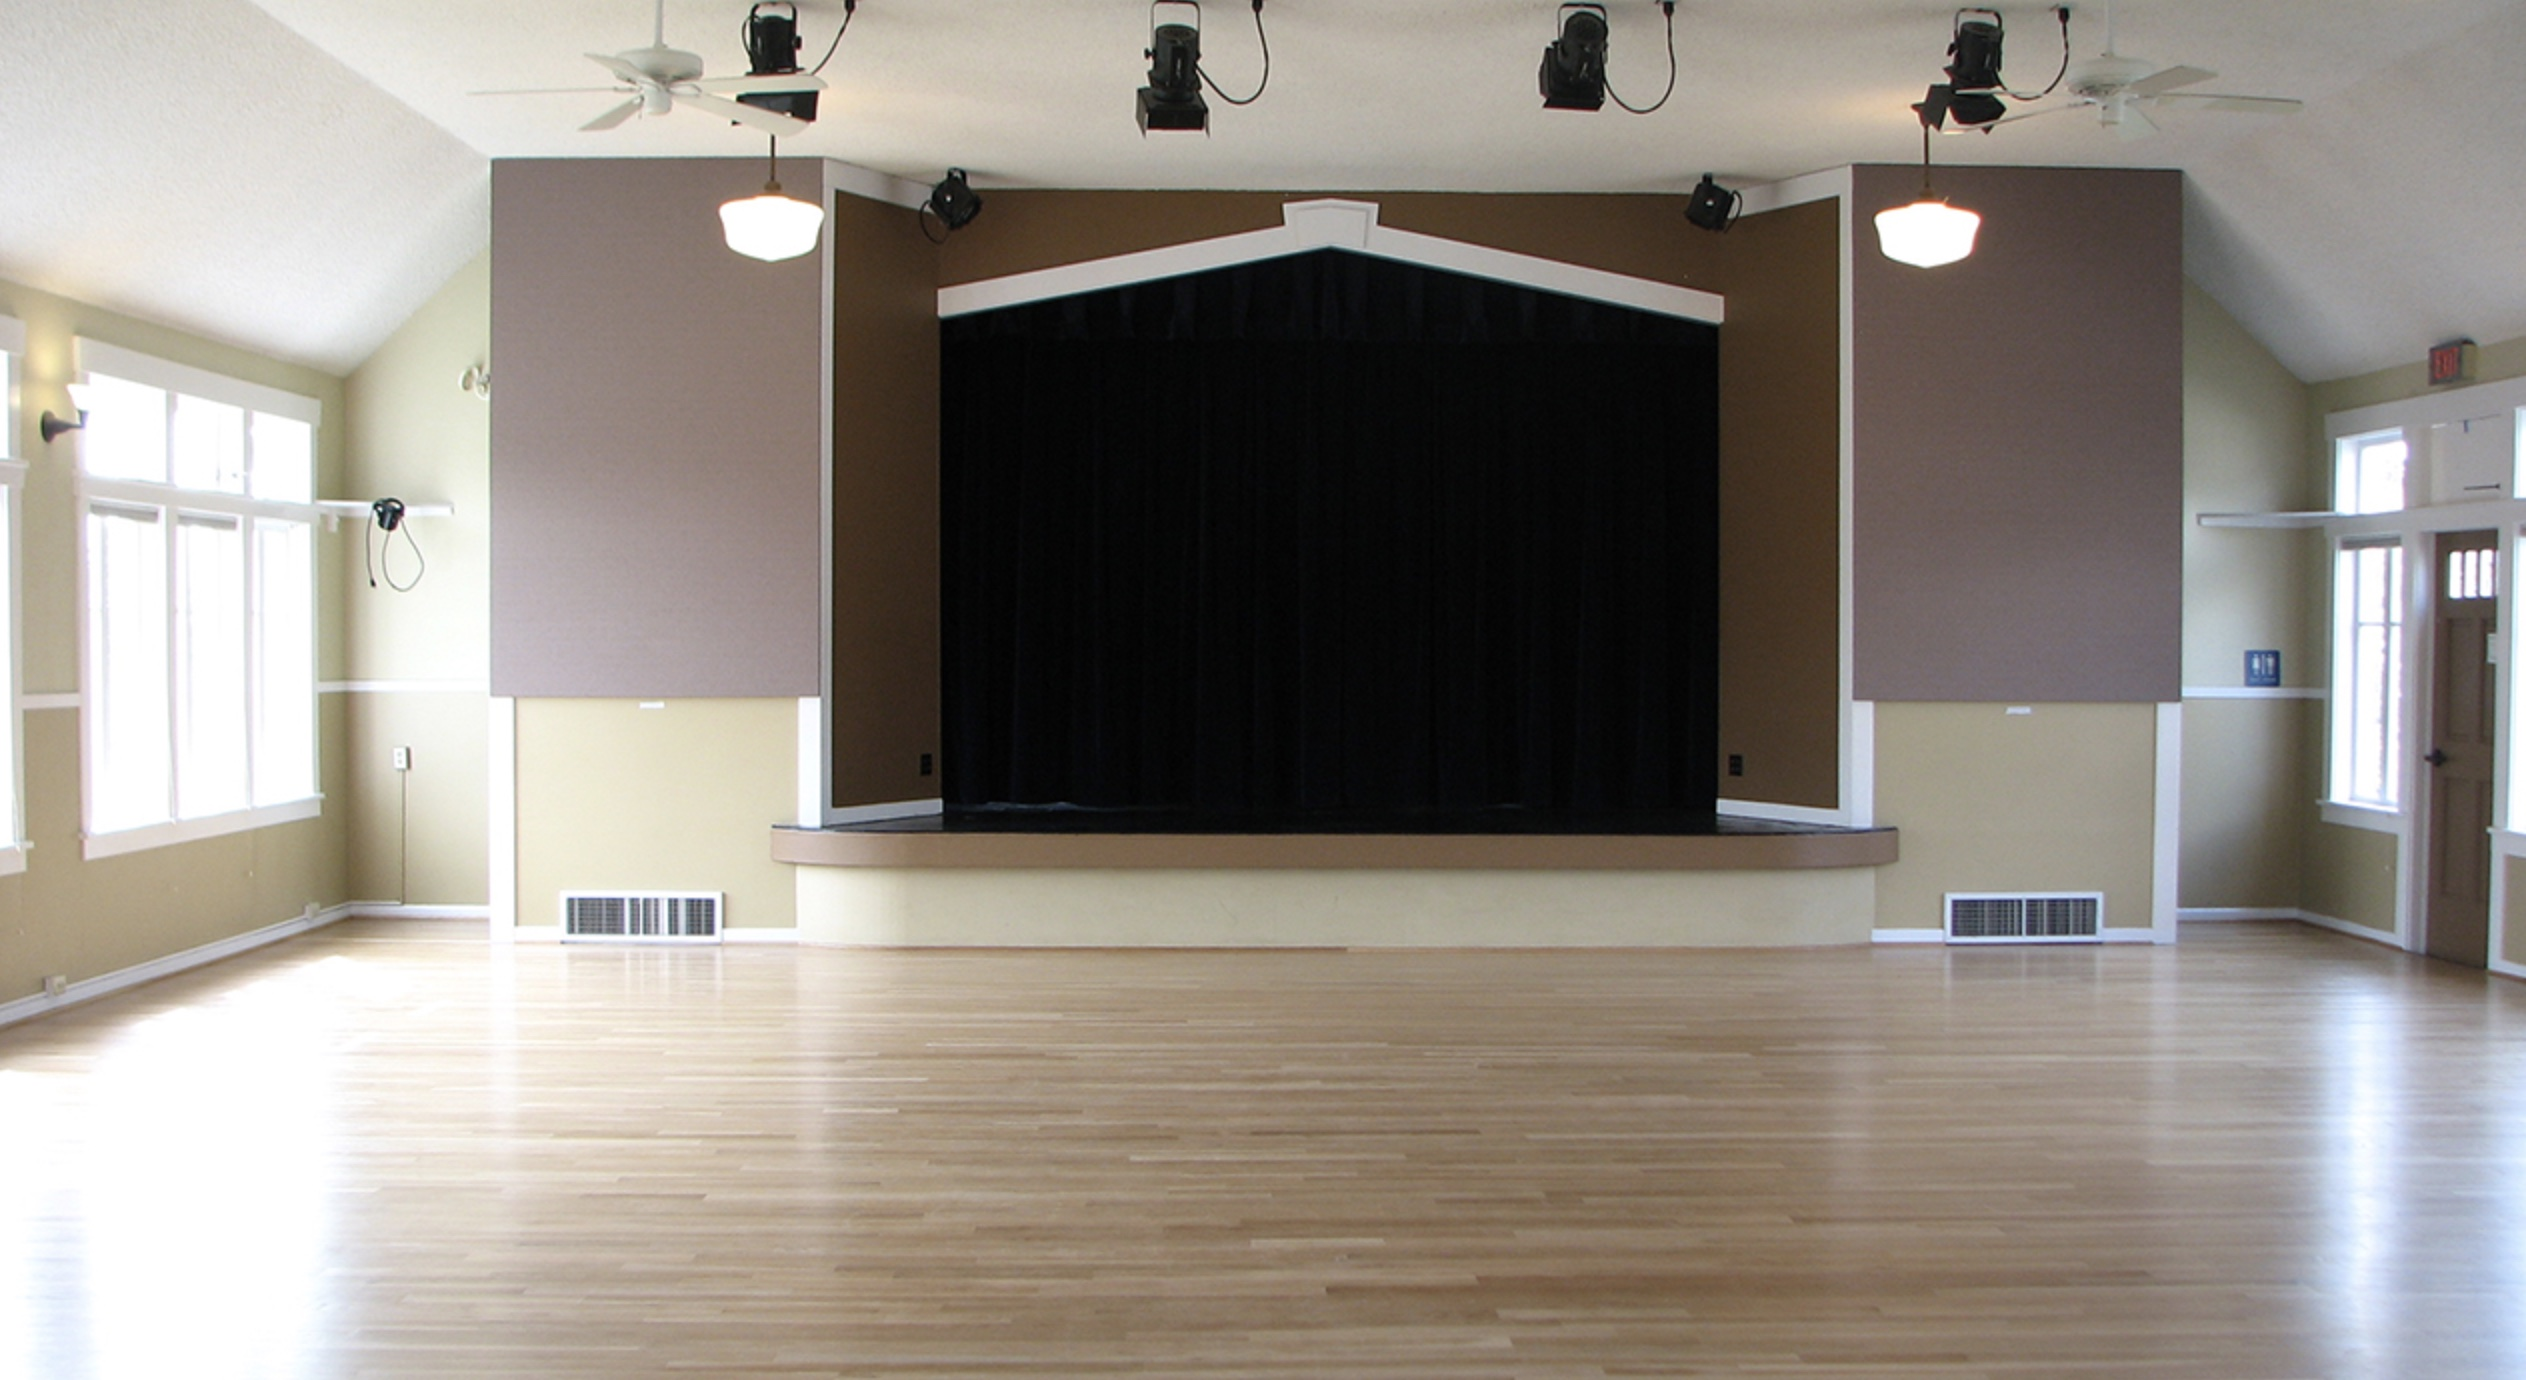 Raised stage in Upper Hall